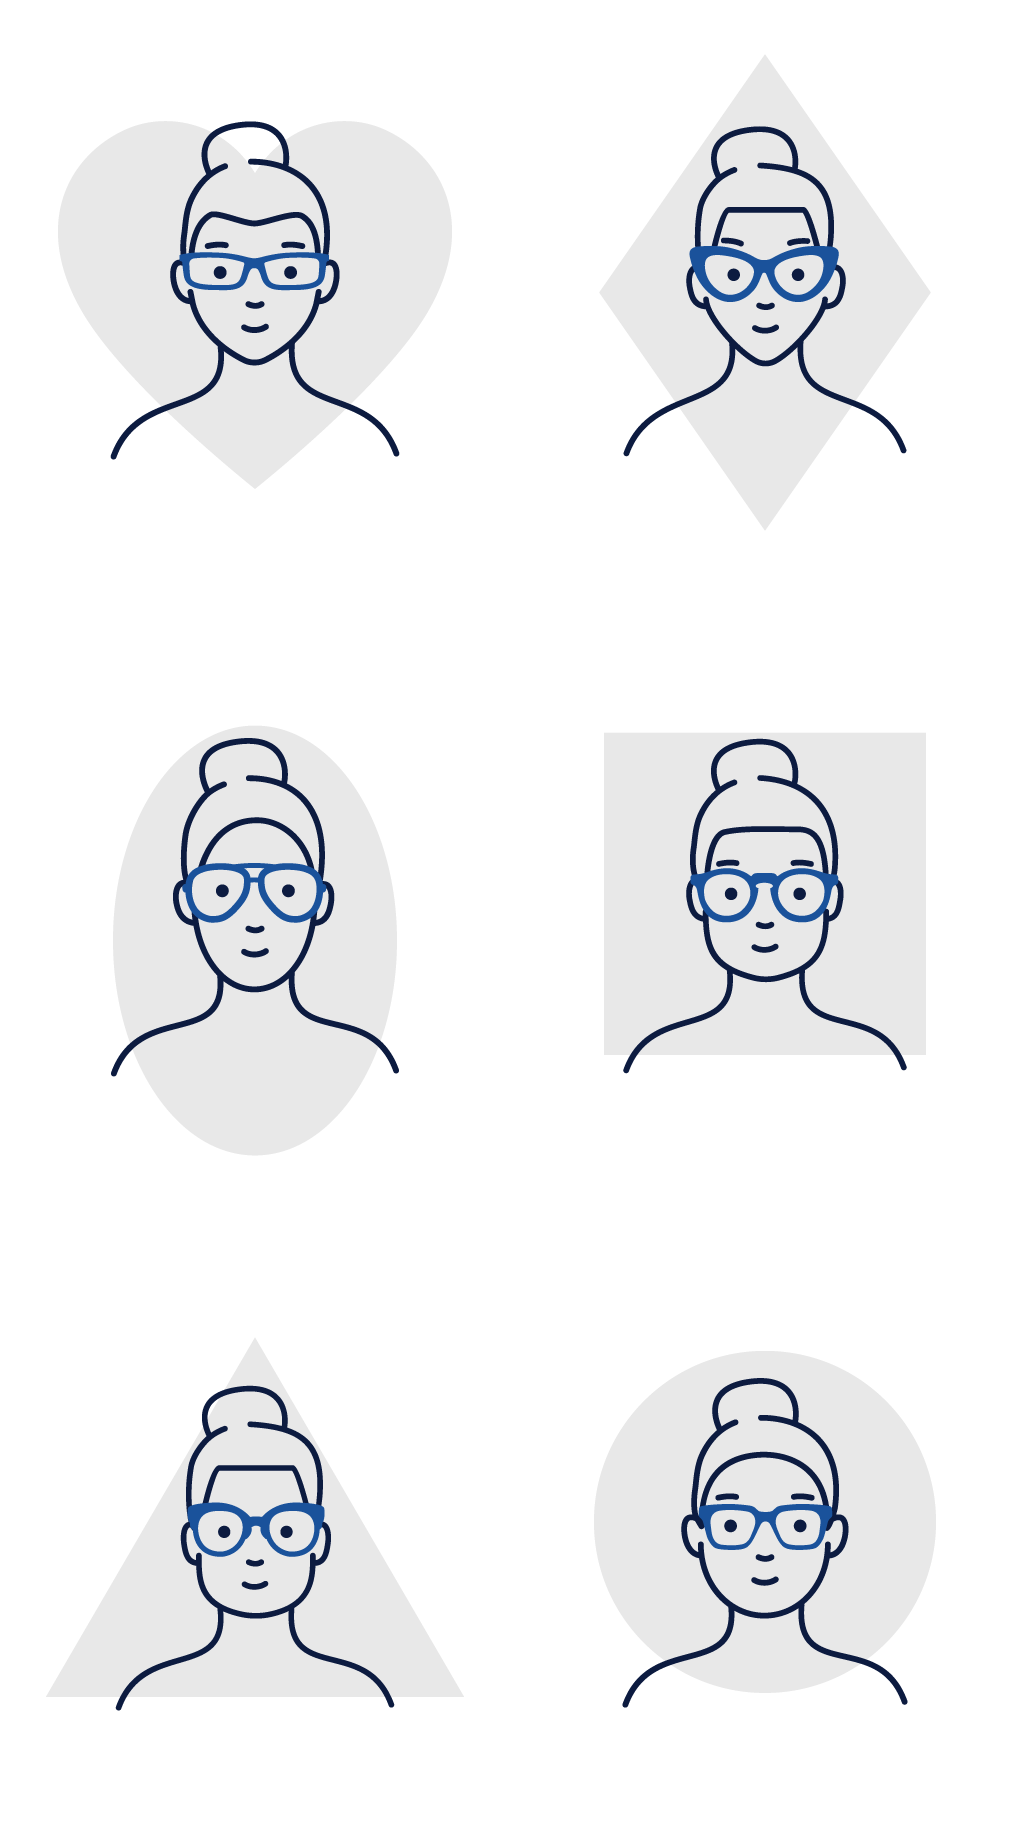 Illustration of various face shapes - women